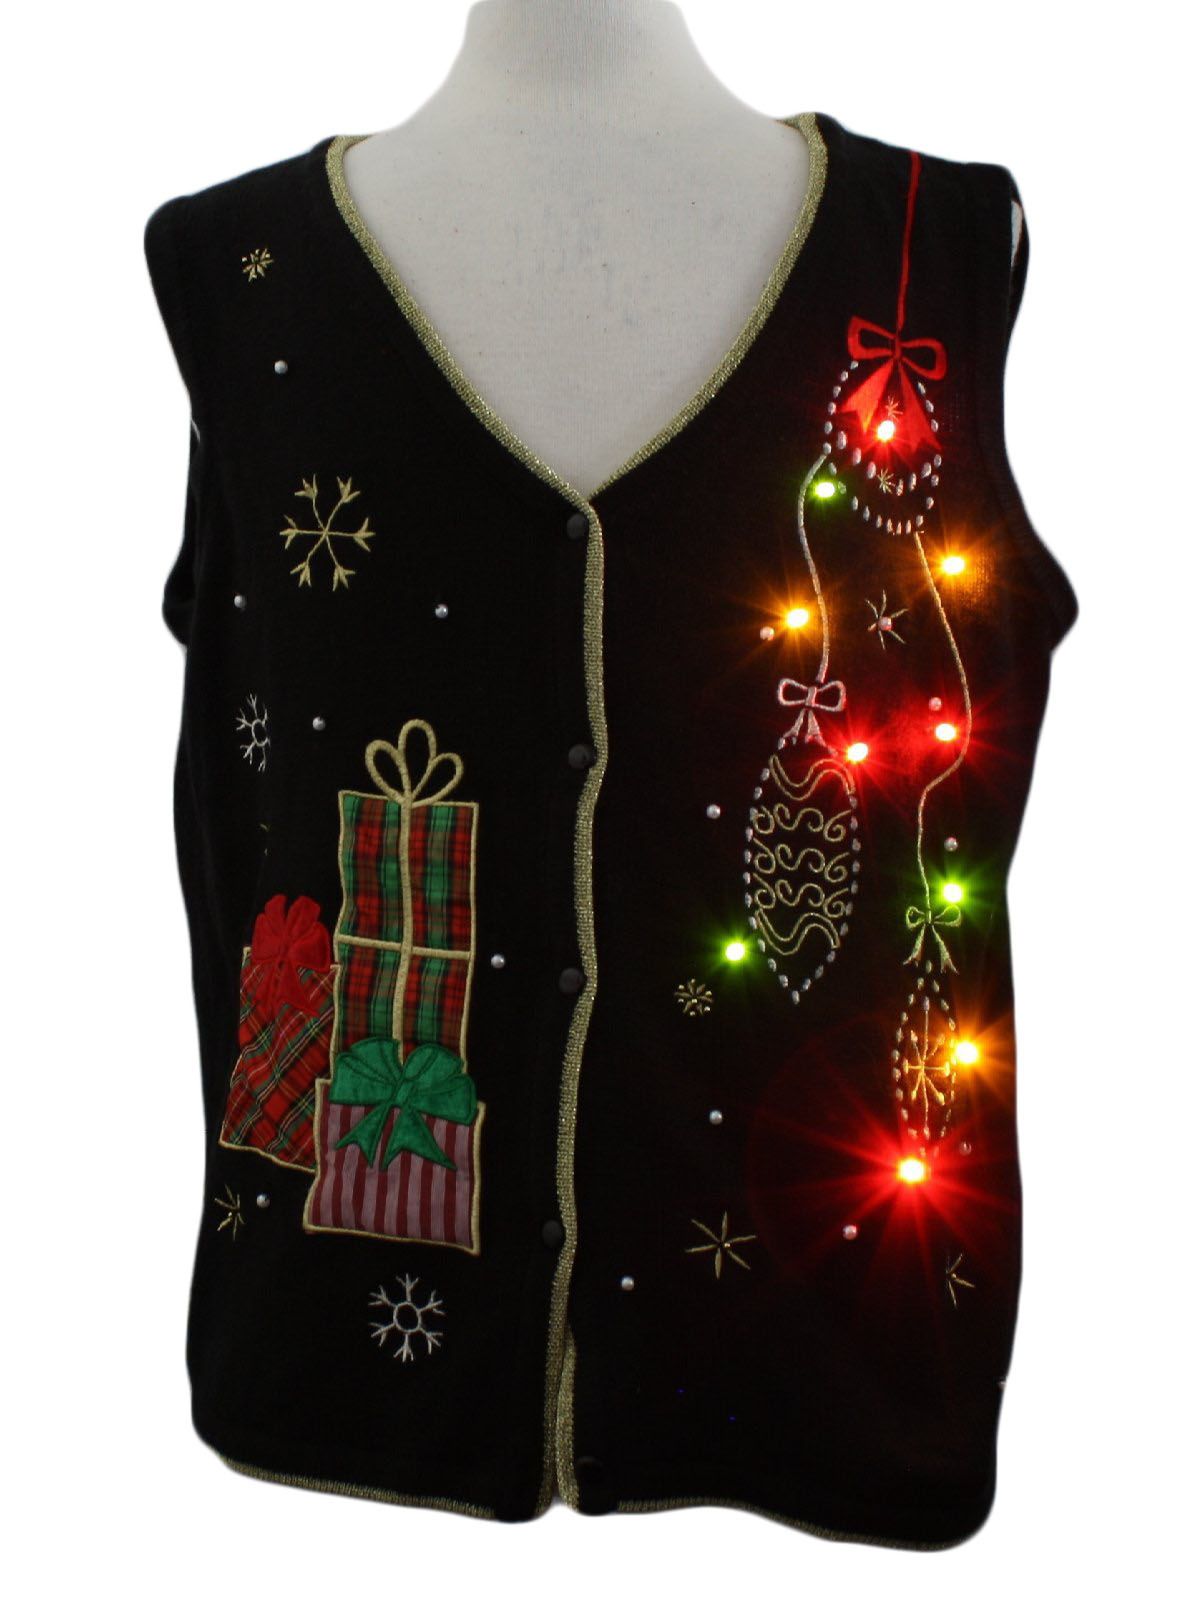 Lightup Ugly Christmas Sweater Vest: -Pinecone symbol- Unisex ...